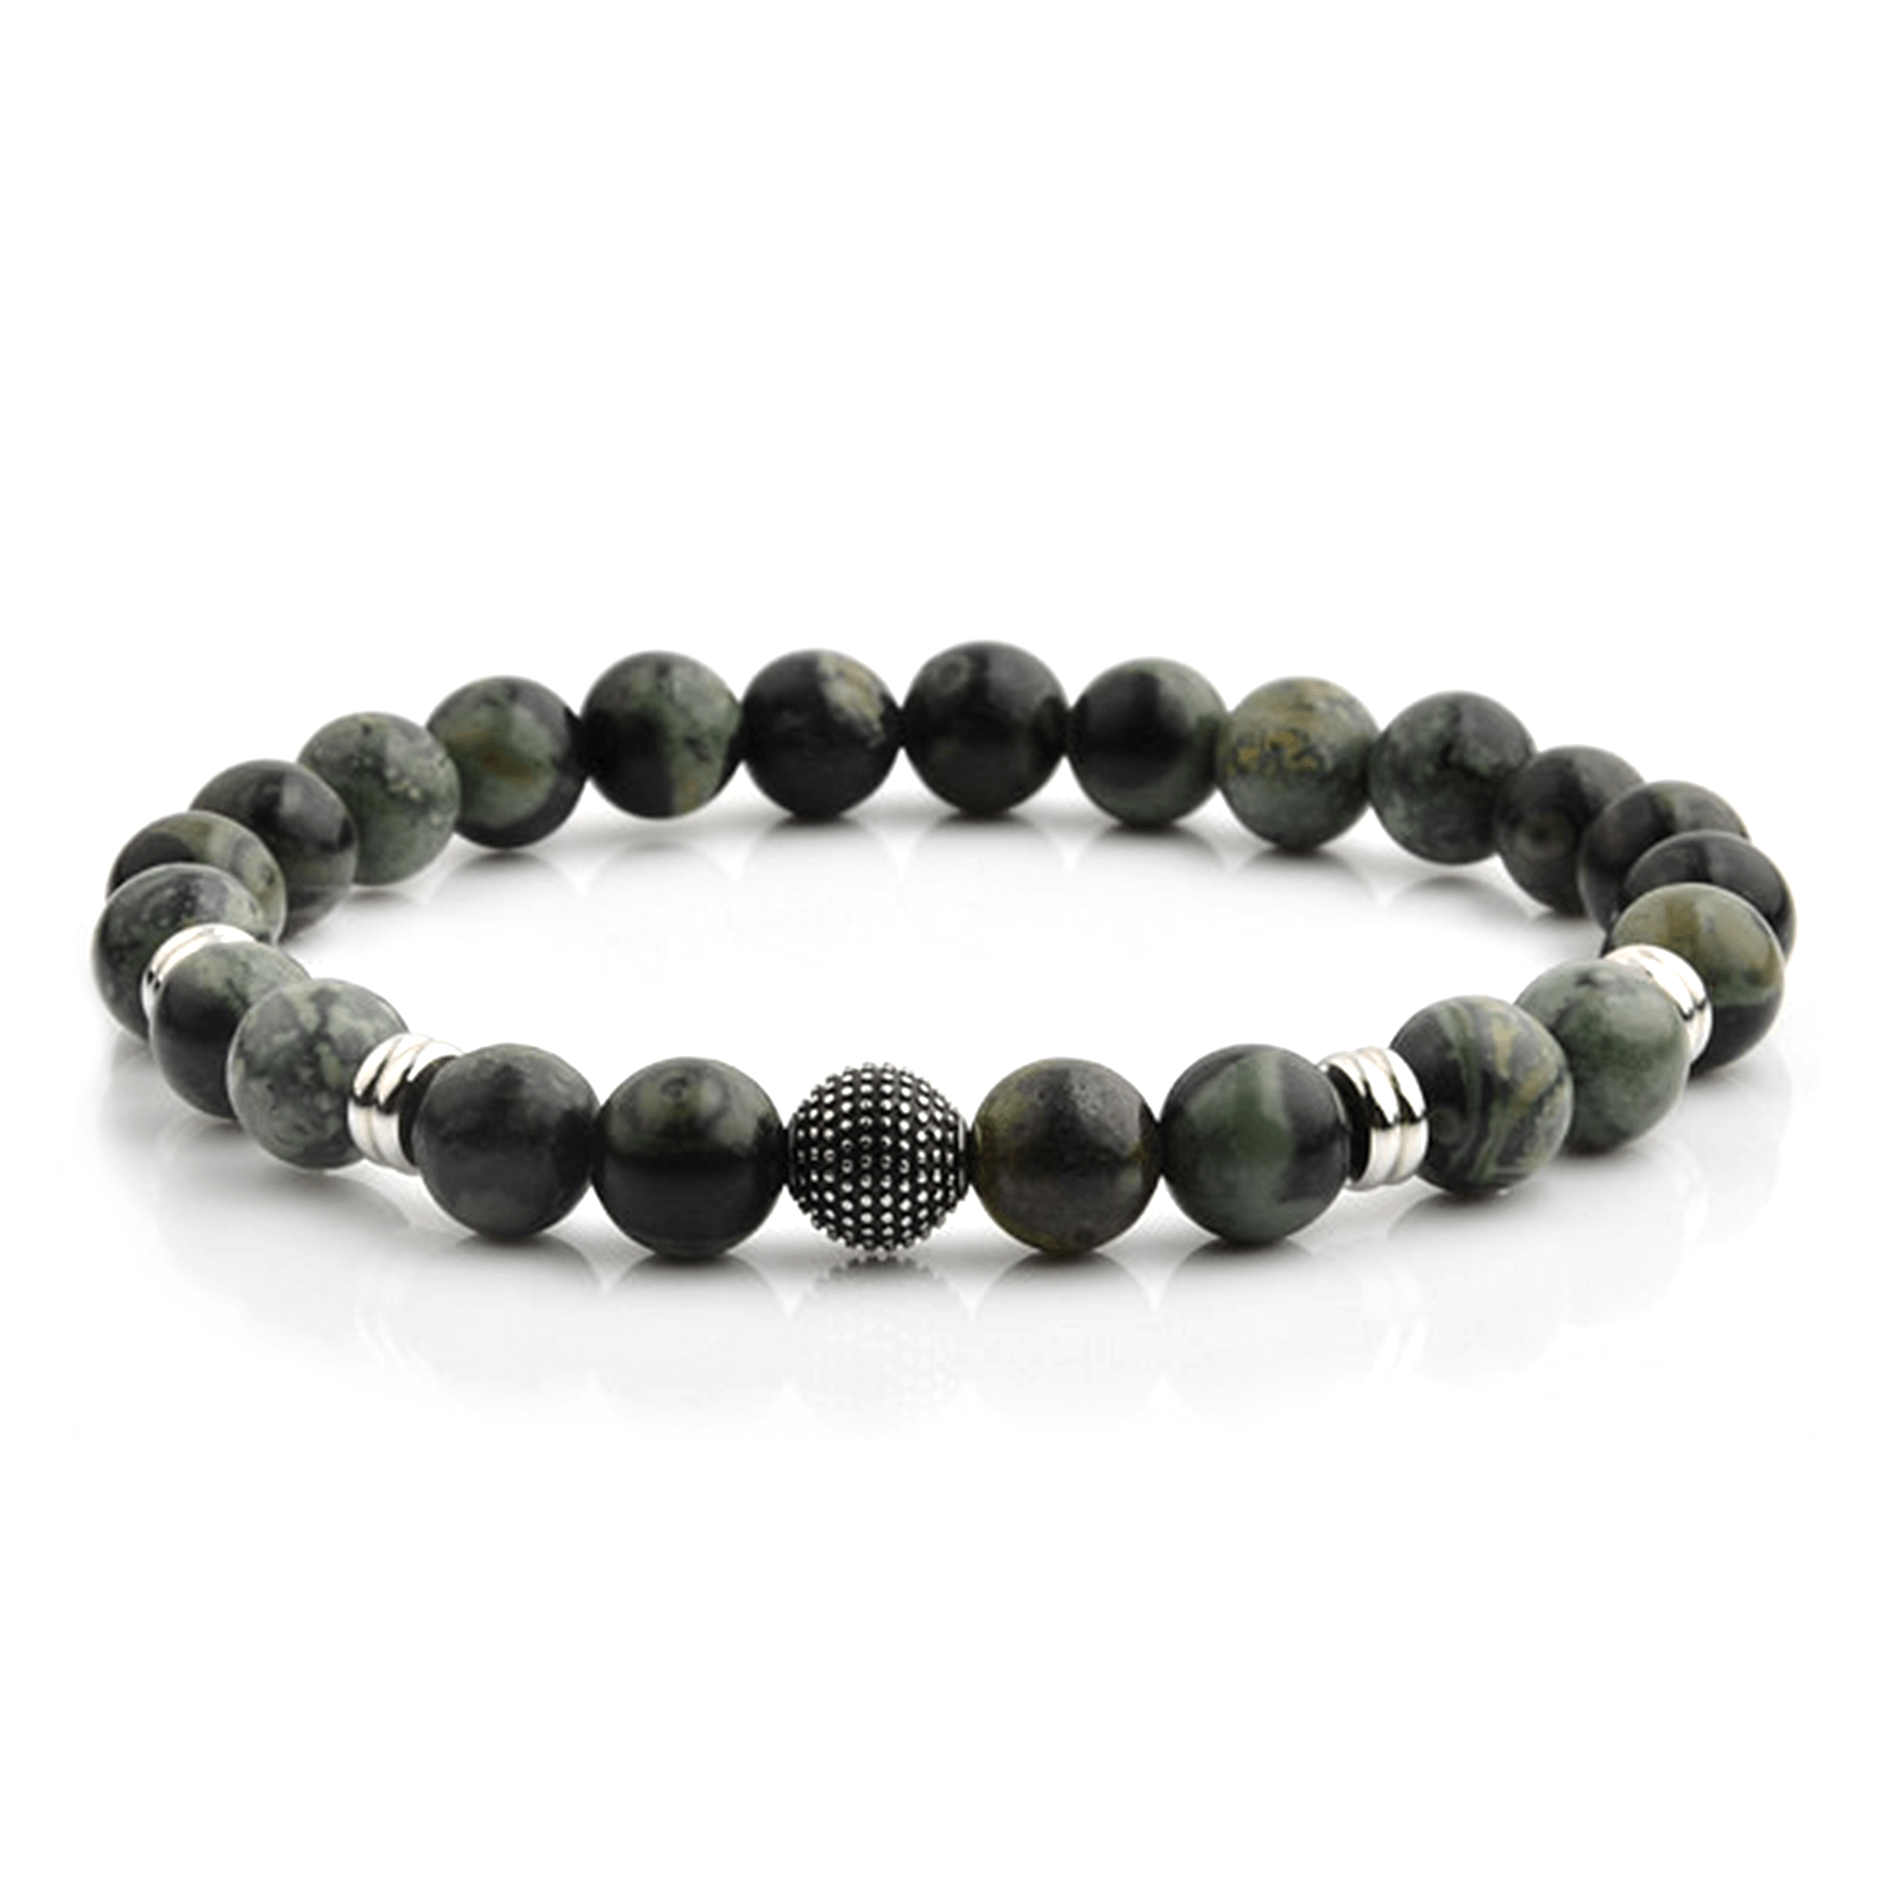 HYLIZO X Series 238 - Forest Green Beaded bracelet with 316 Stainless Steel Spike Ball